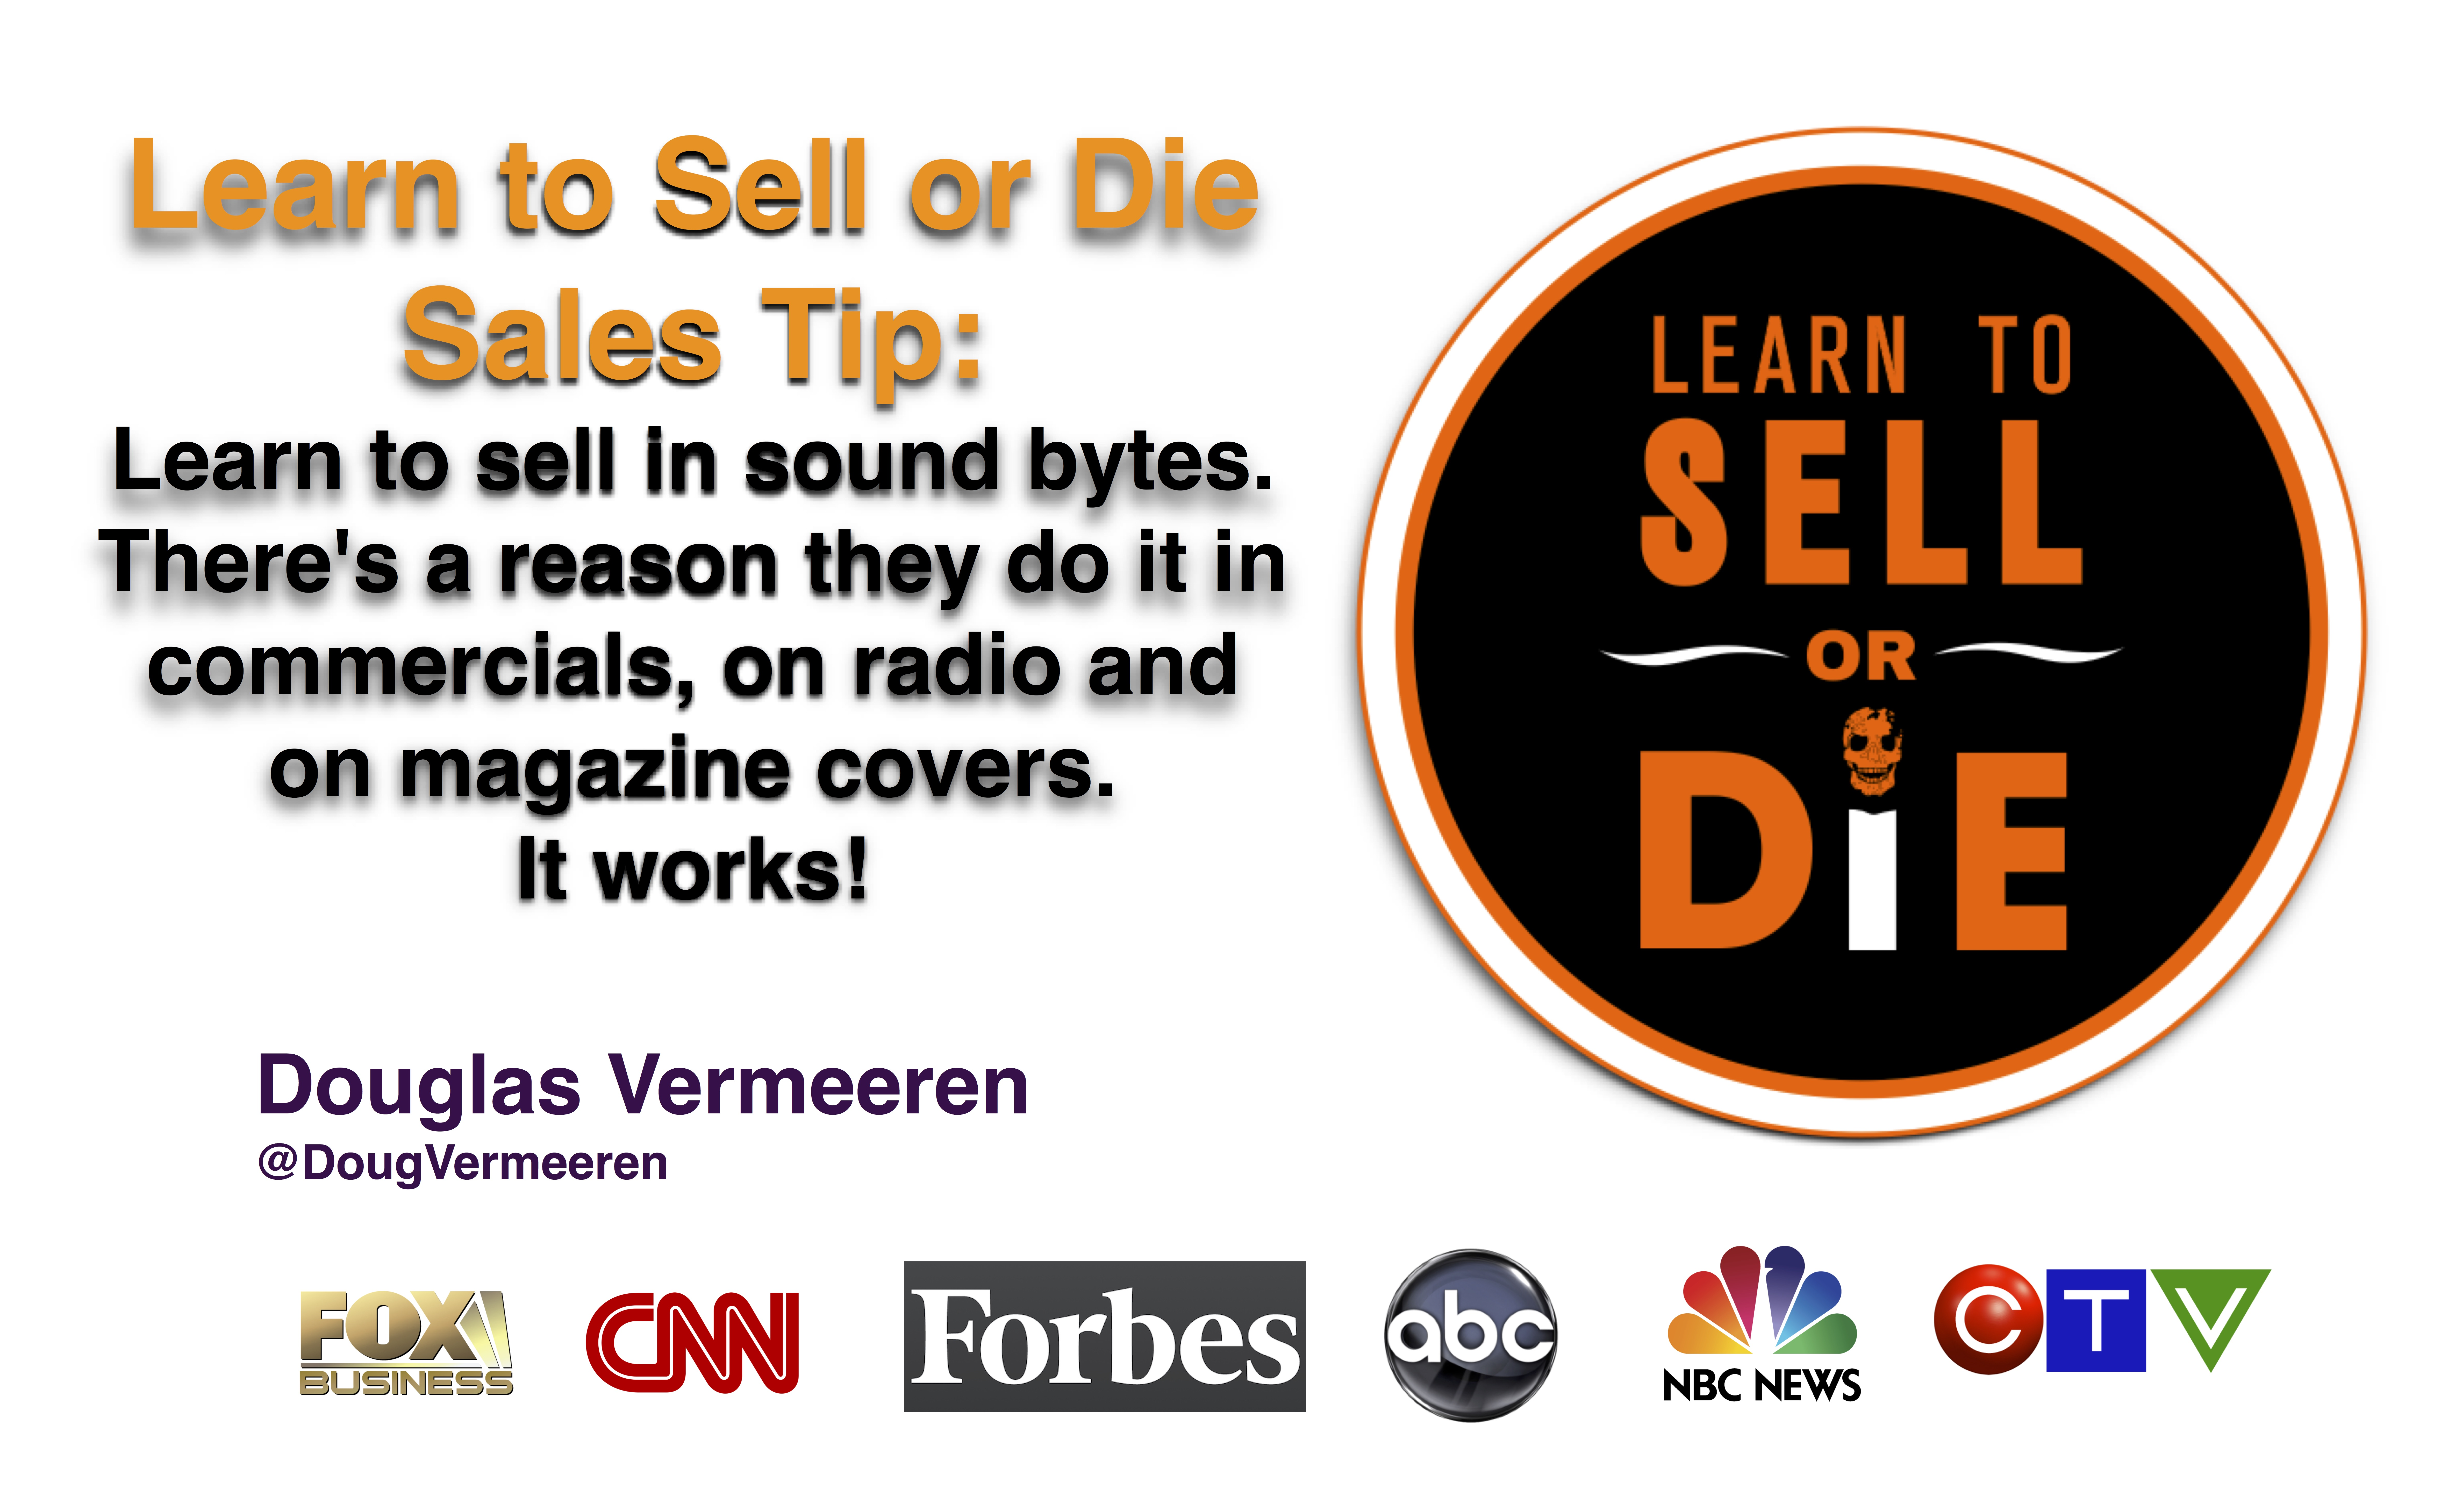 How to learn to sell 71